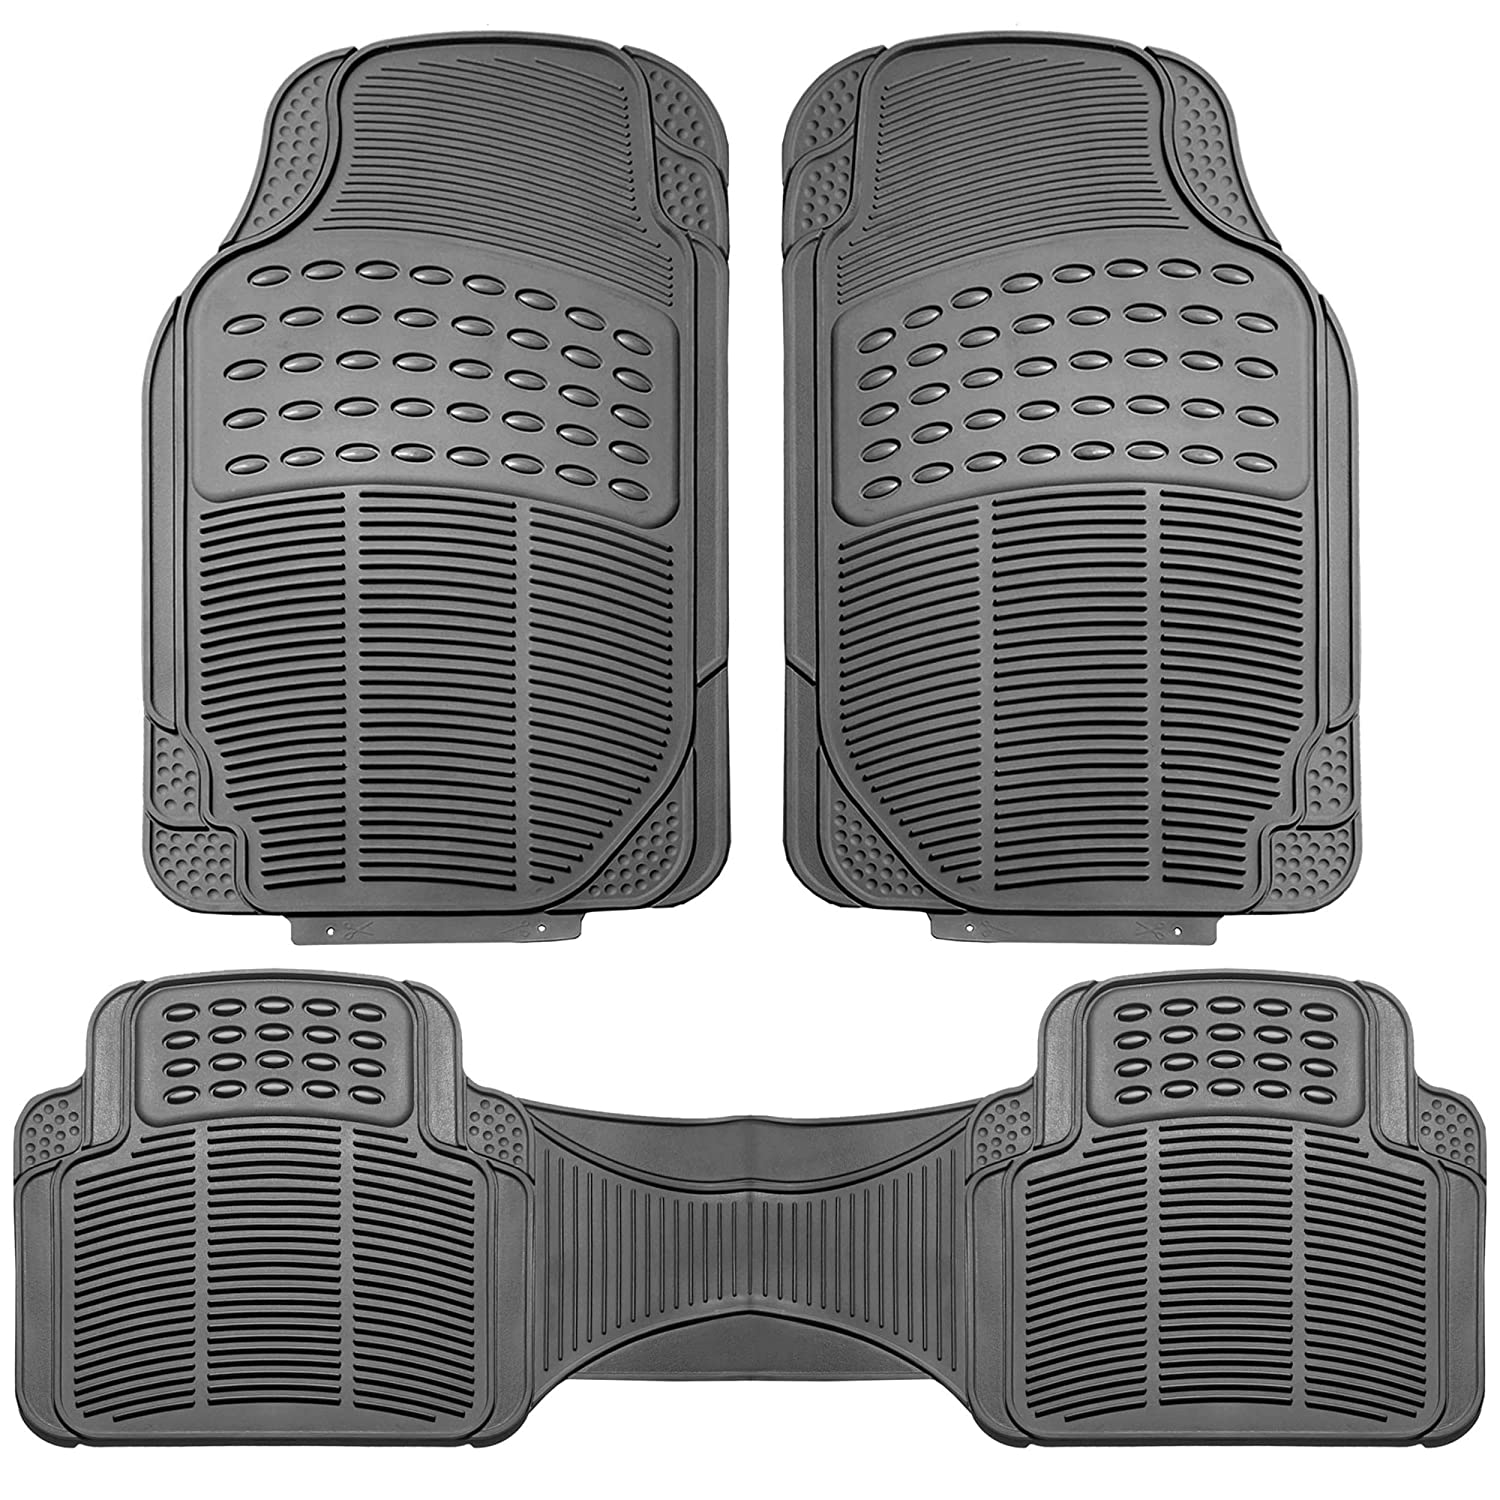 FH Group F14402BLACK Black Premium Carpet Floor Mats with Heel Pad